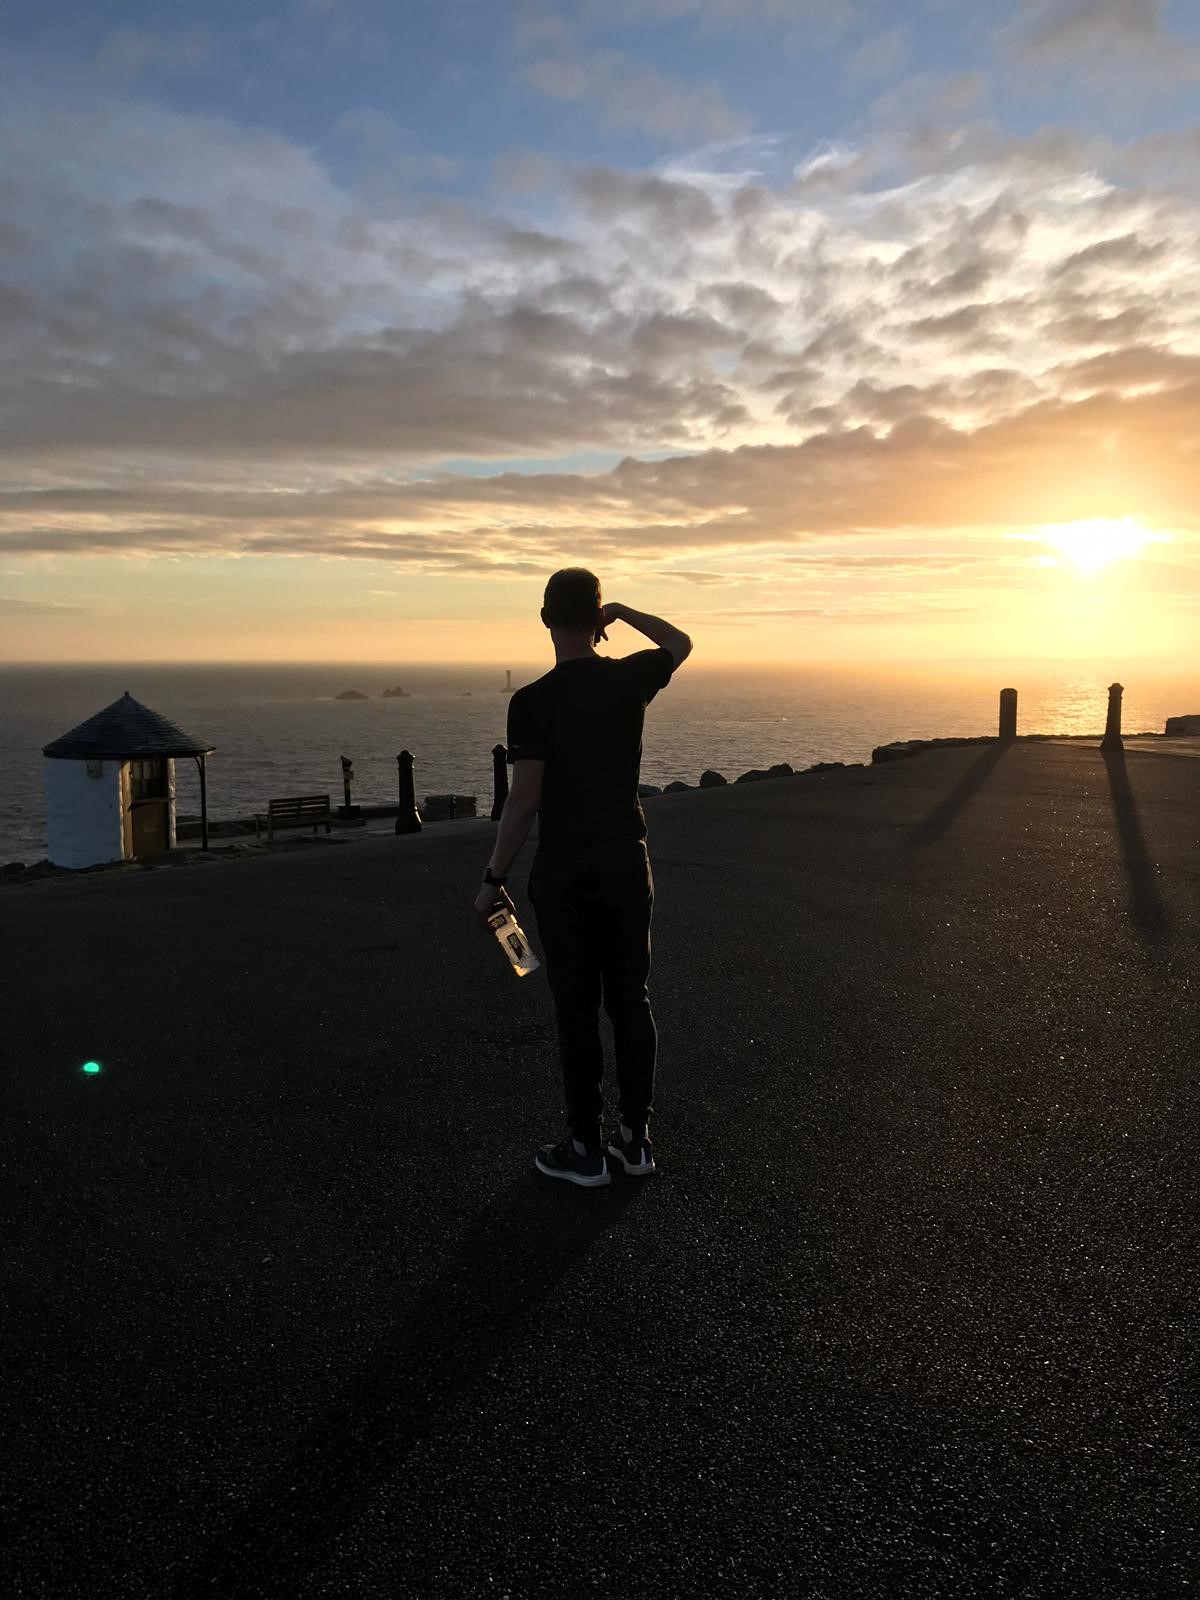 Me looking over the beautiful sunset at Land's End, the day before my attempt started. At this point, I was confident and calm. And even though I knew how tough this was going to be, it was tougher than anything I have imagined